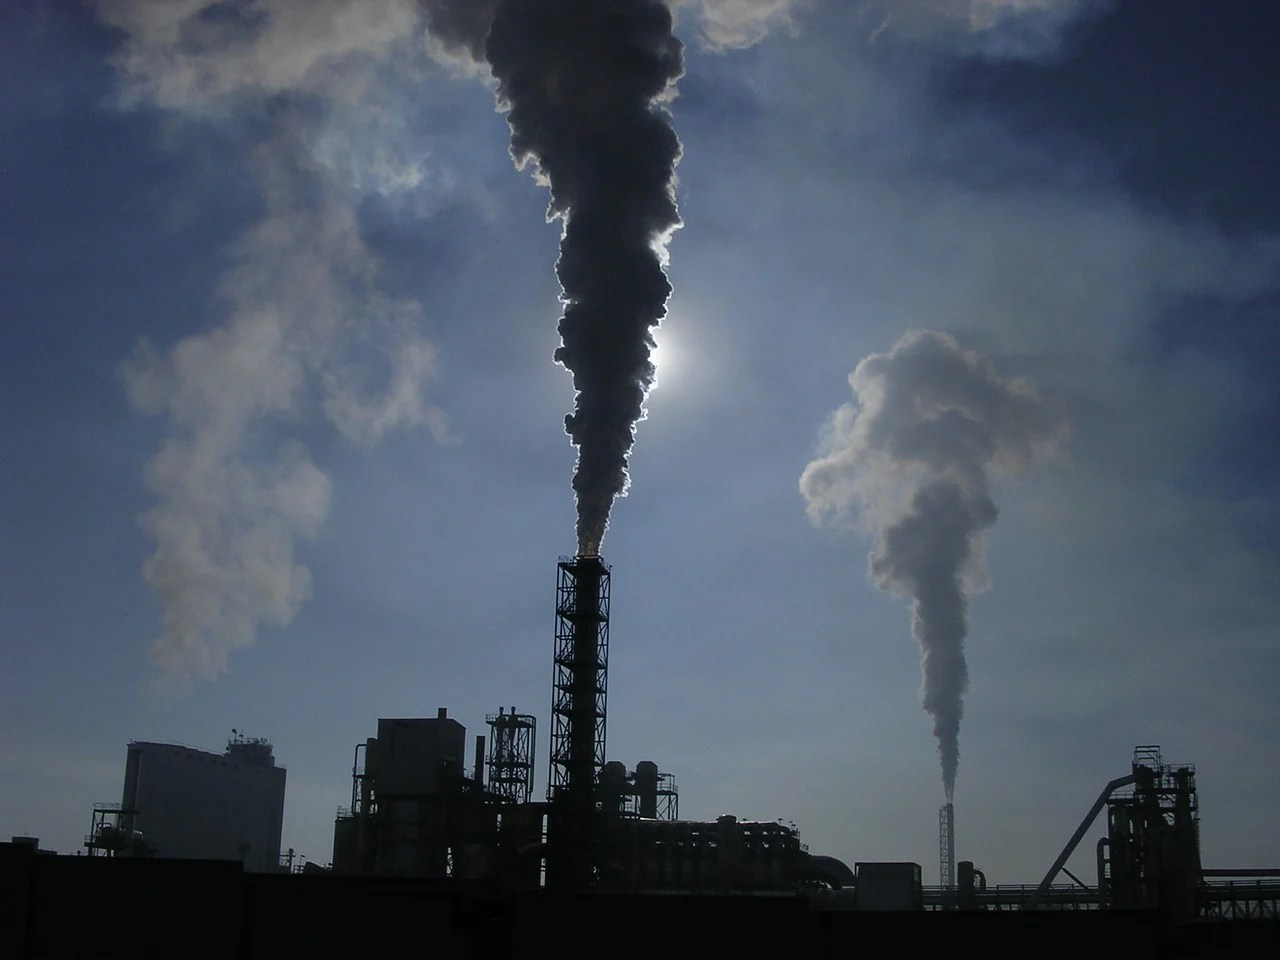 The IPCC has identified accelerated technological innovation as a critical part of limiting global warming.